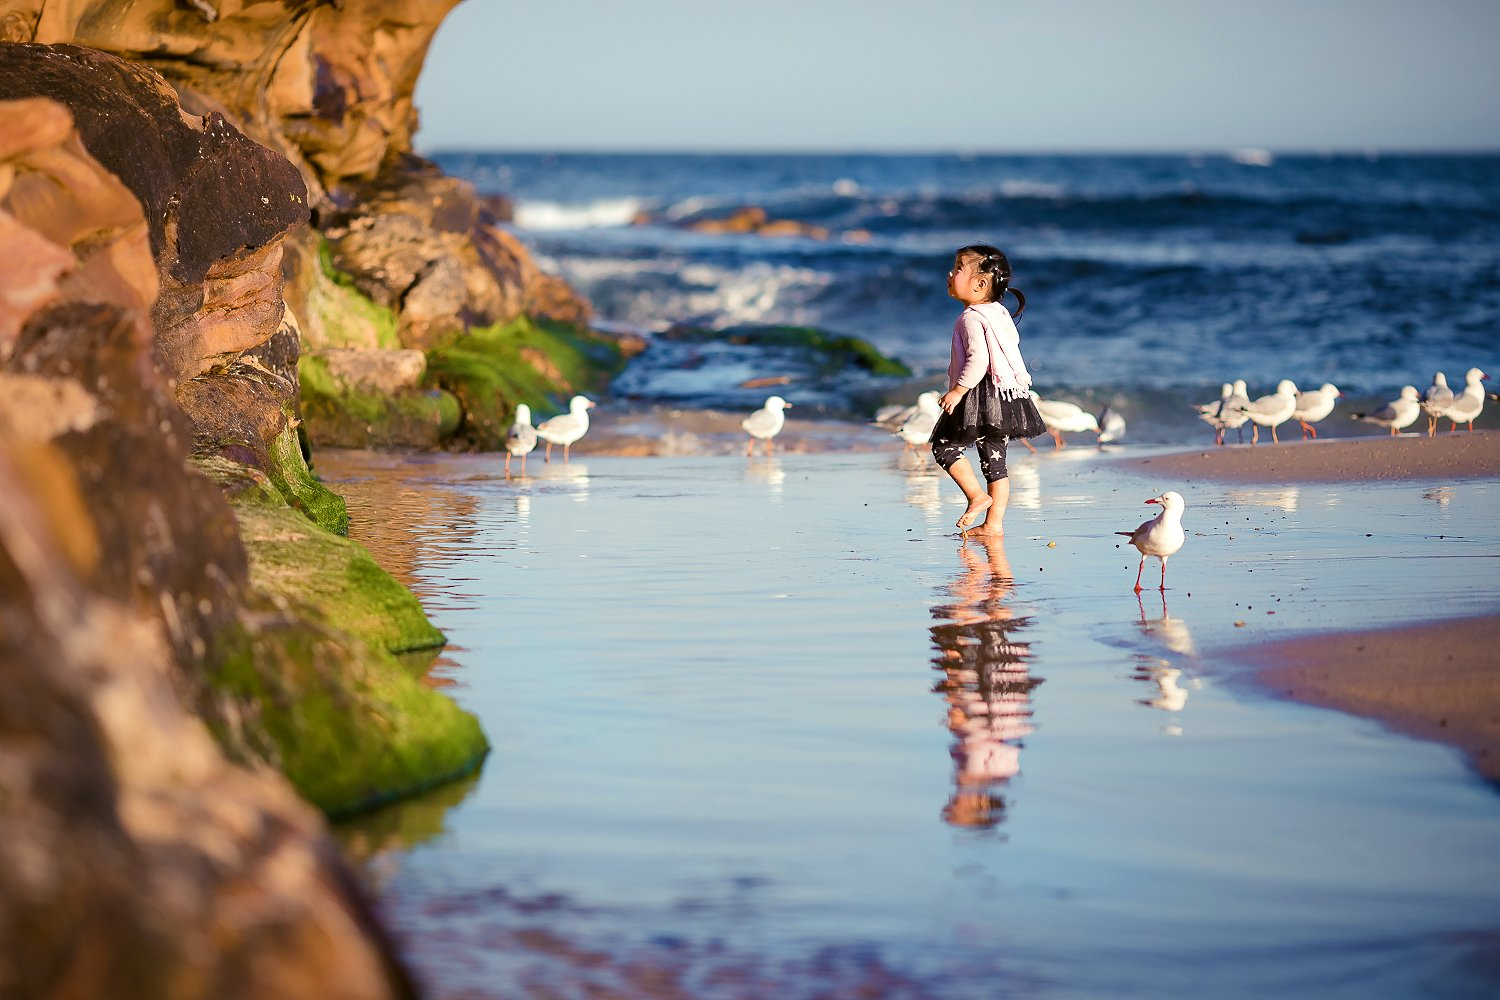 sunny, beach, blue, waves, sea, seaside, cute, seagull, childhood, lifestyle, Derek Zhang